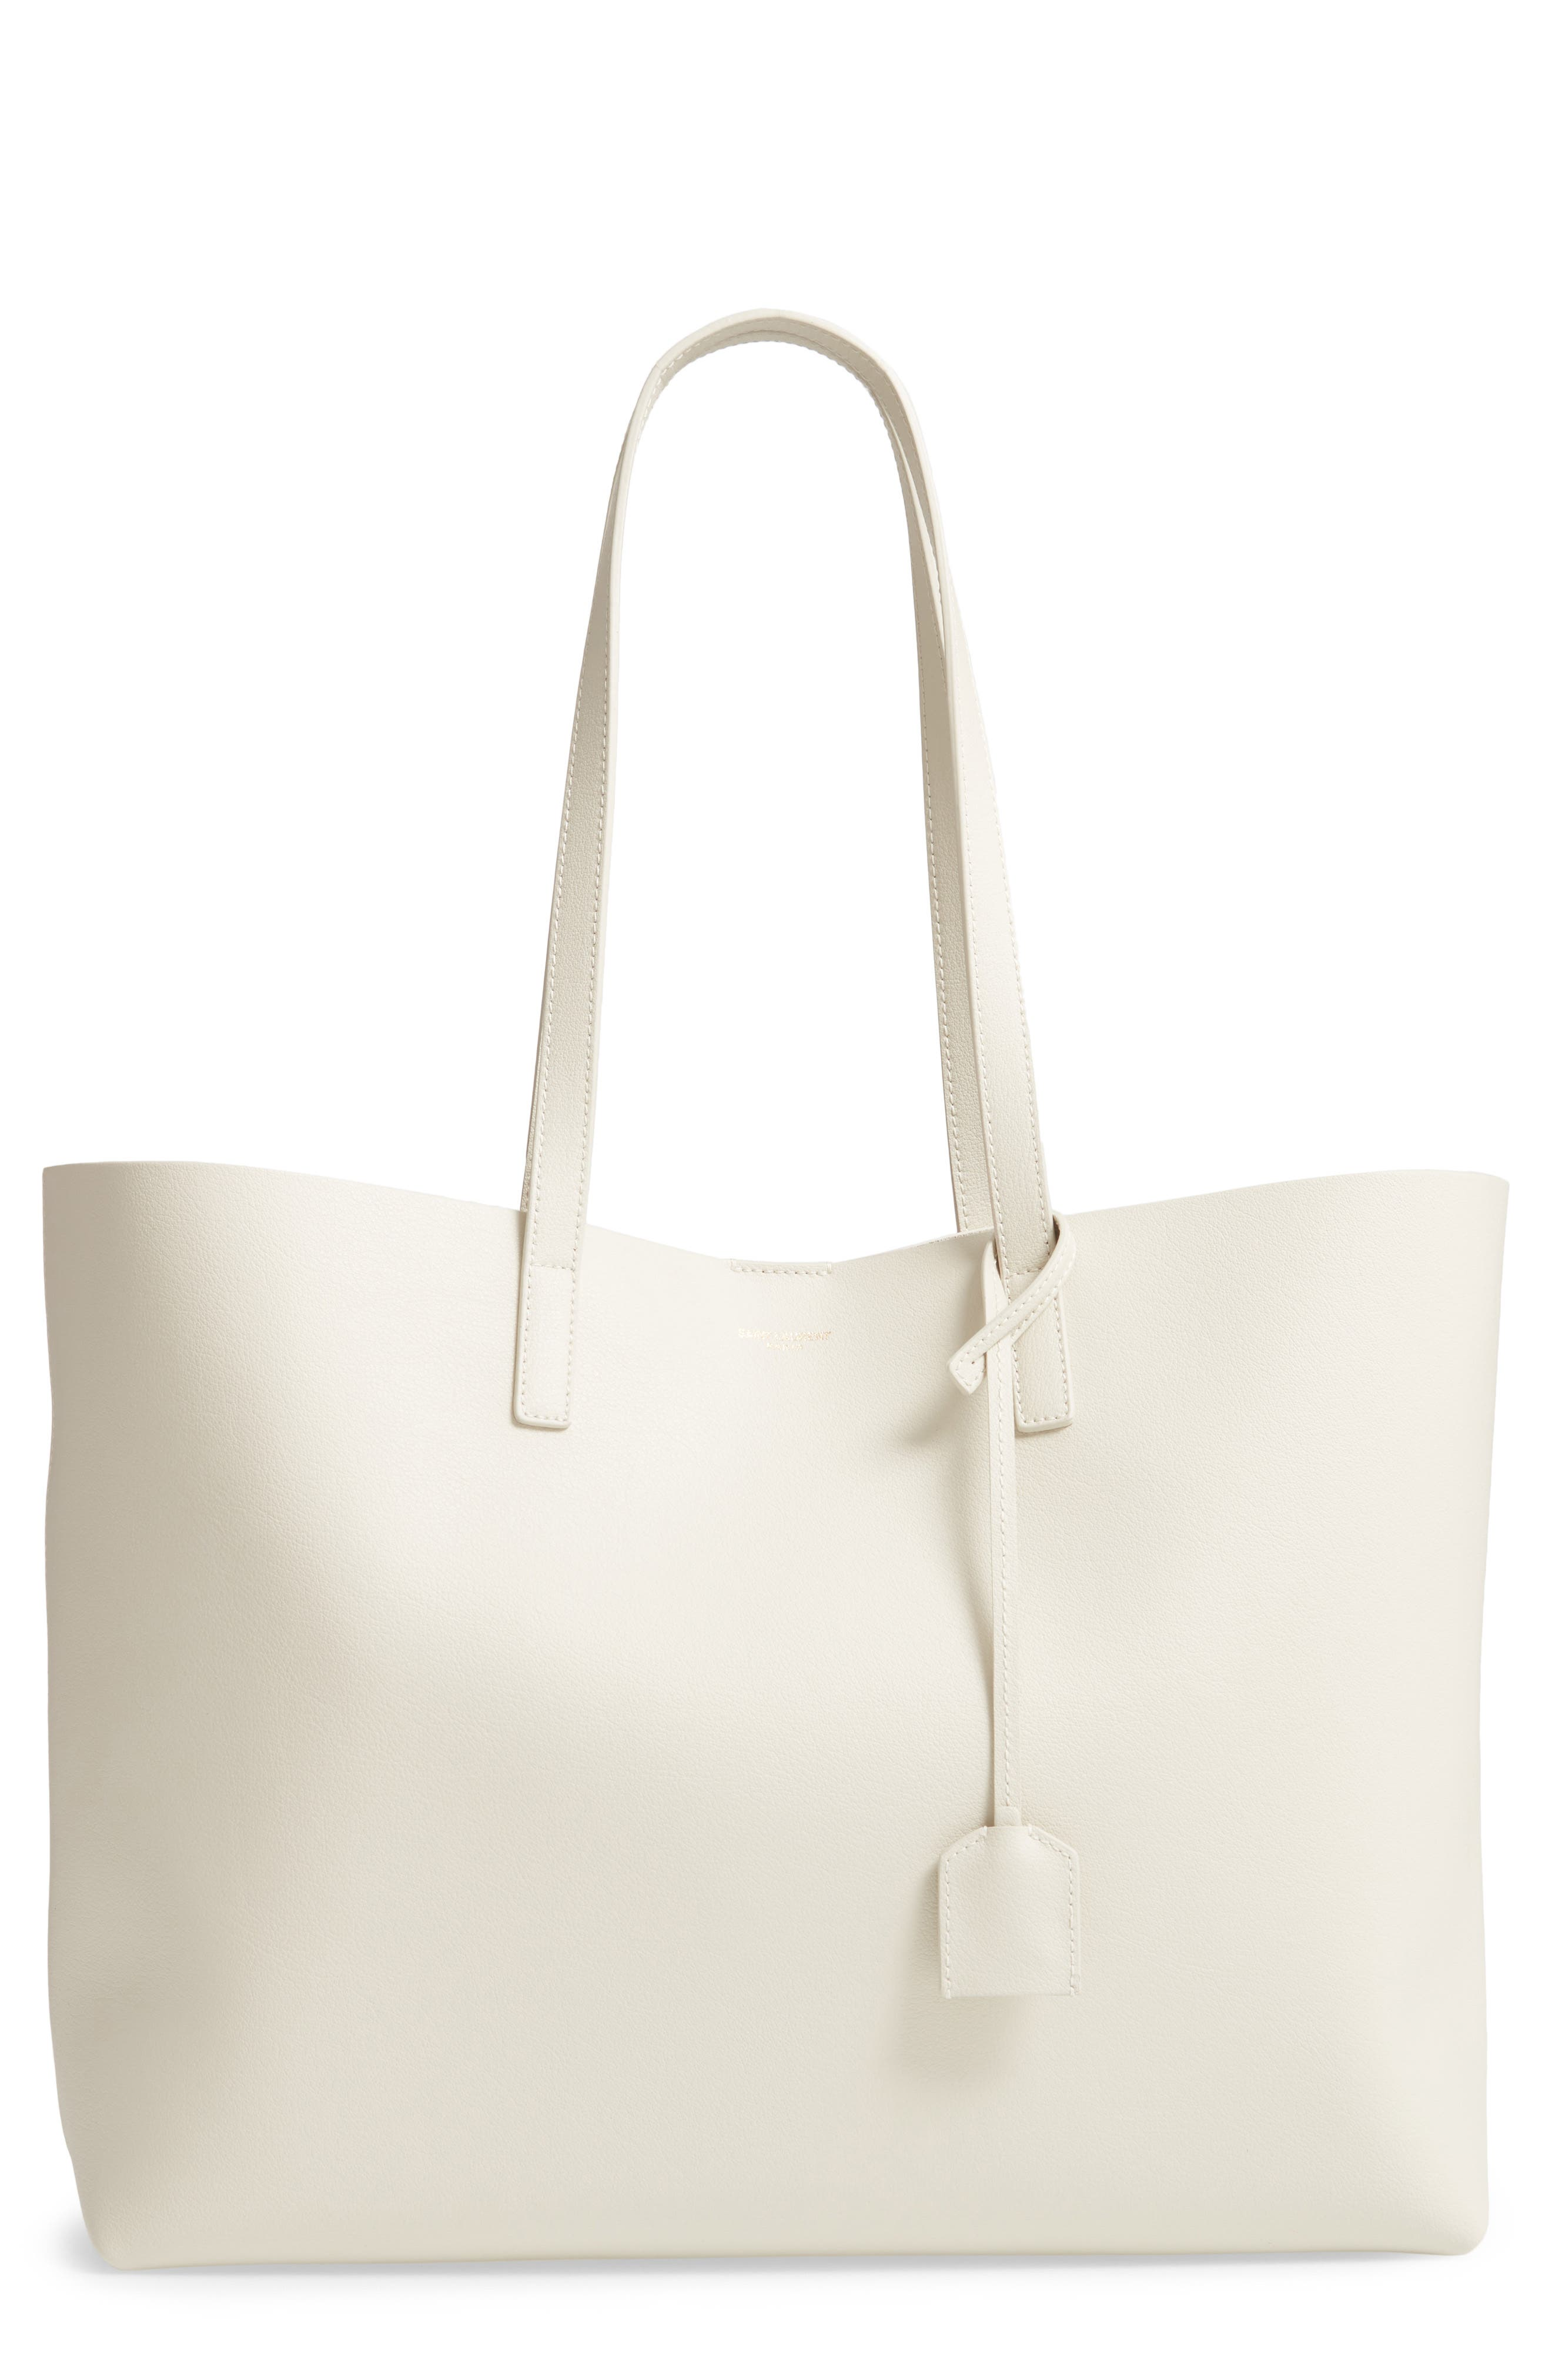 SAINT LAURENT, 'Shopping' Leather Tote, Main thumbnail 1, color, CREMASOFT